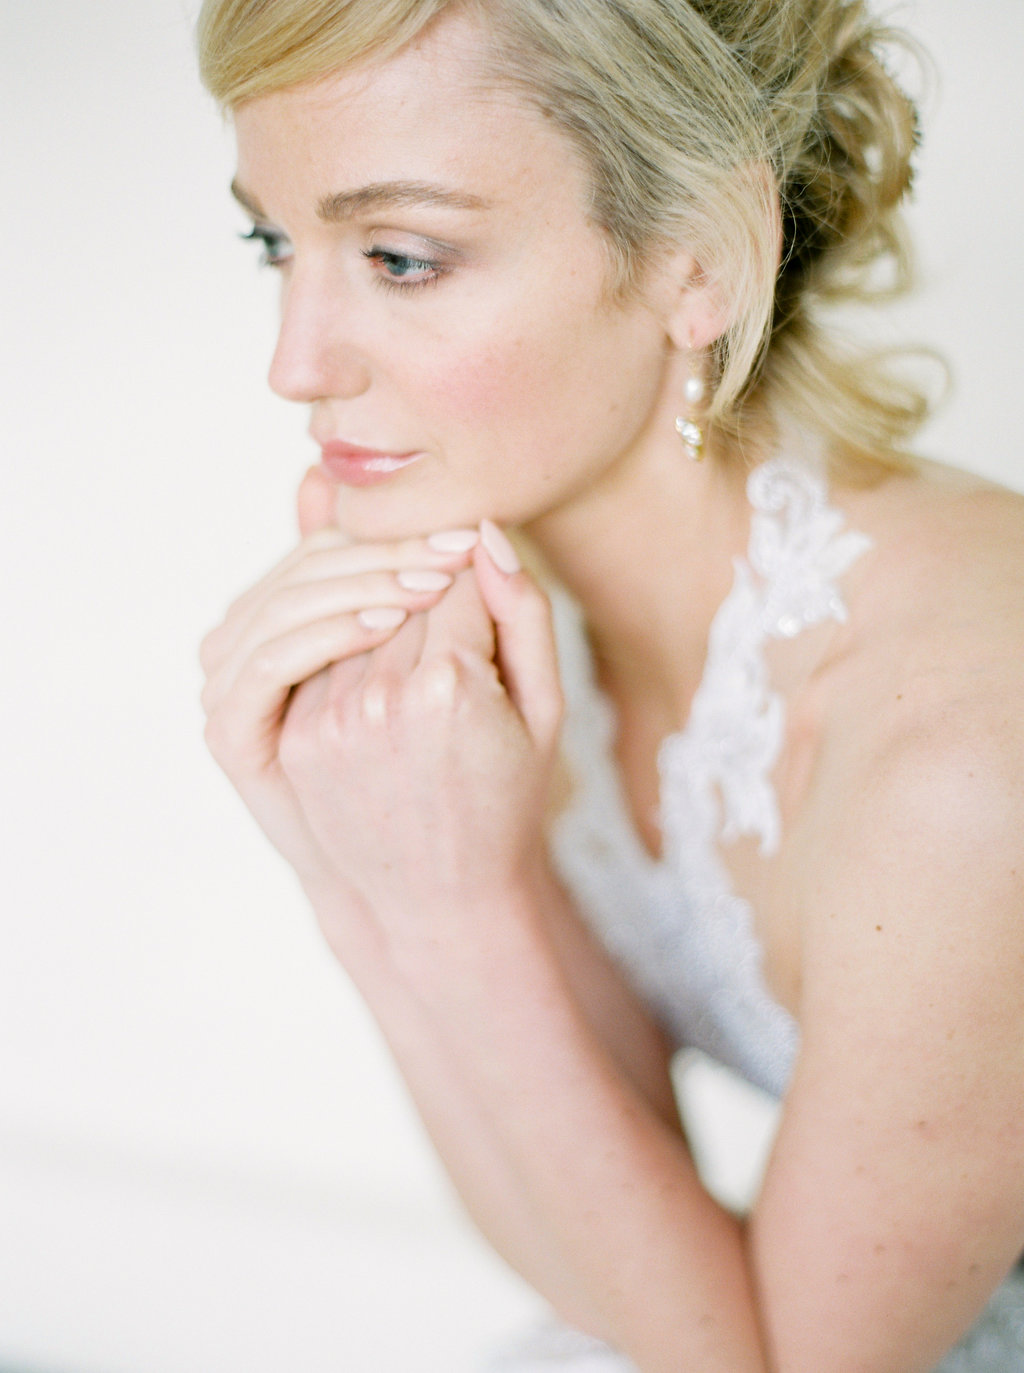 Bridal makeup and hair plus accessories by victoria fergusson at Hotel Endsleigh (98).jpg